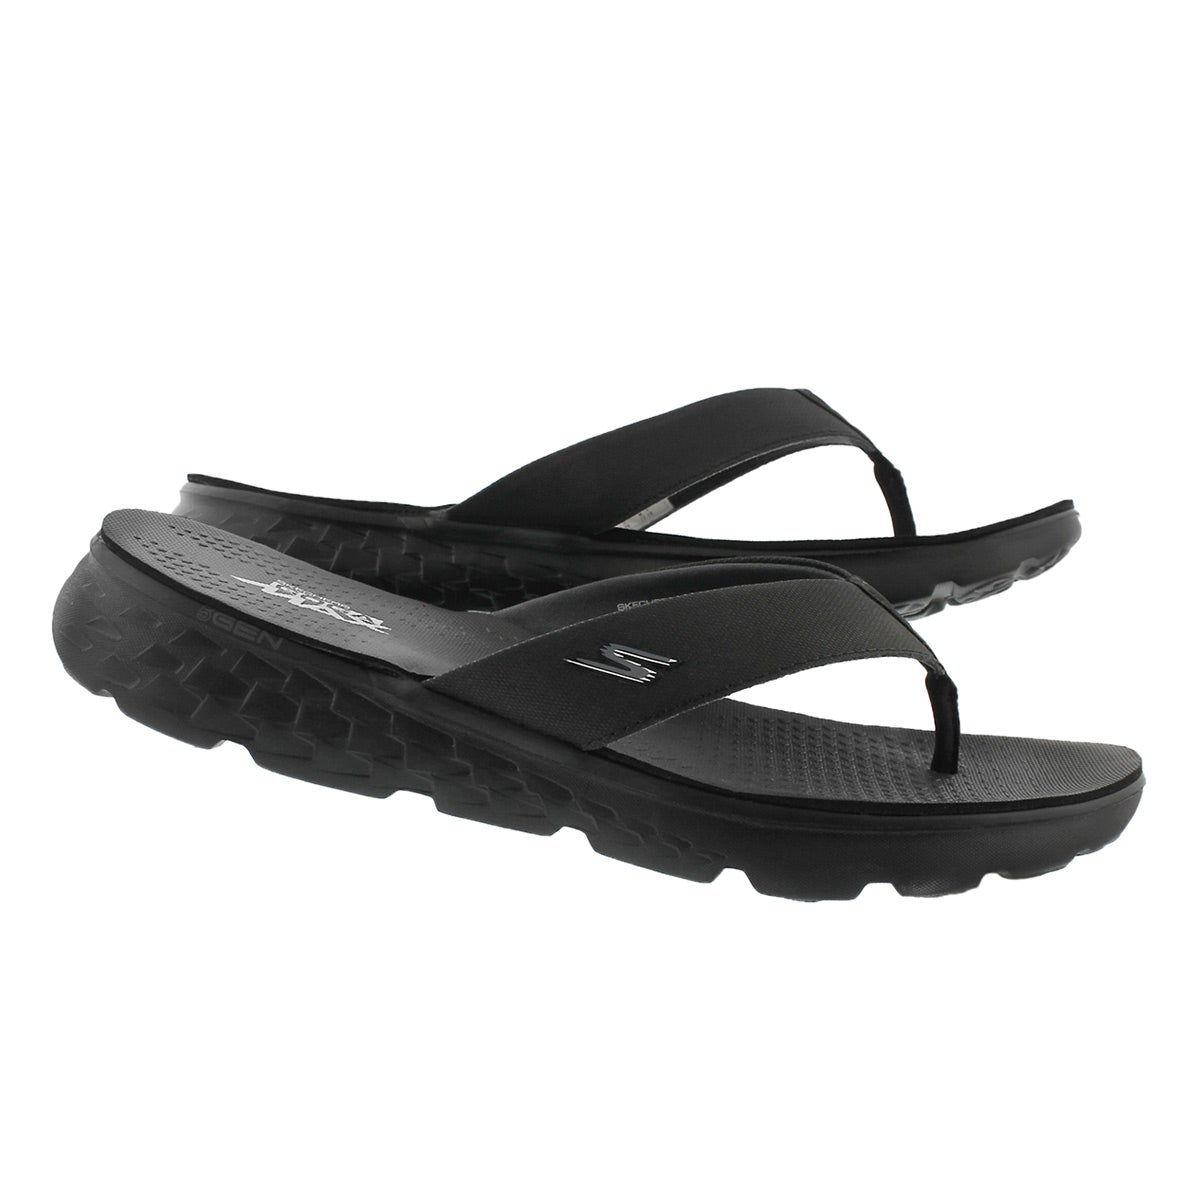 Mns On-The-Go 400 Shore black flip flop